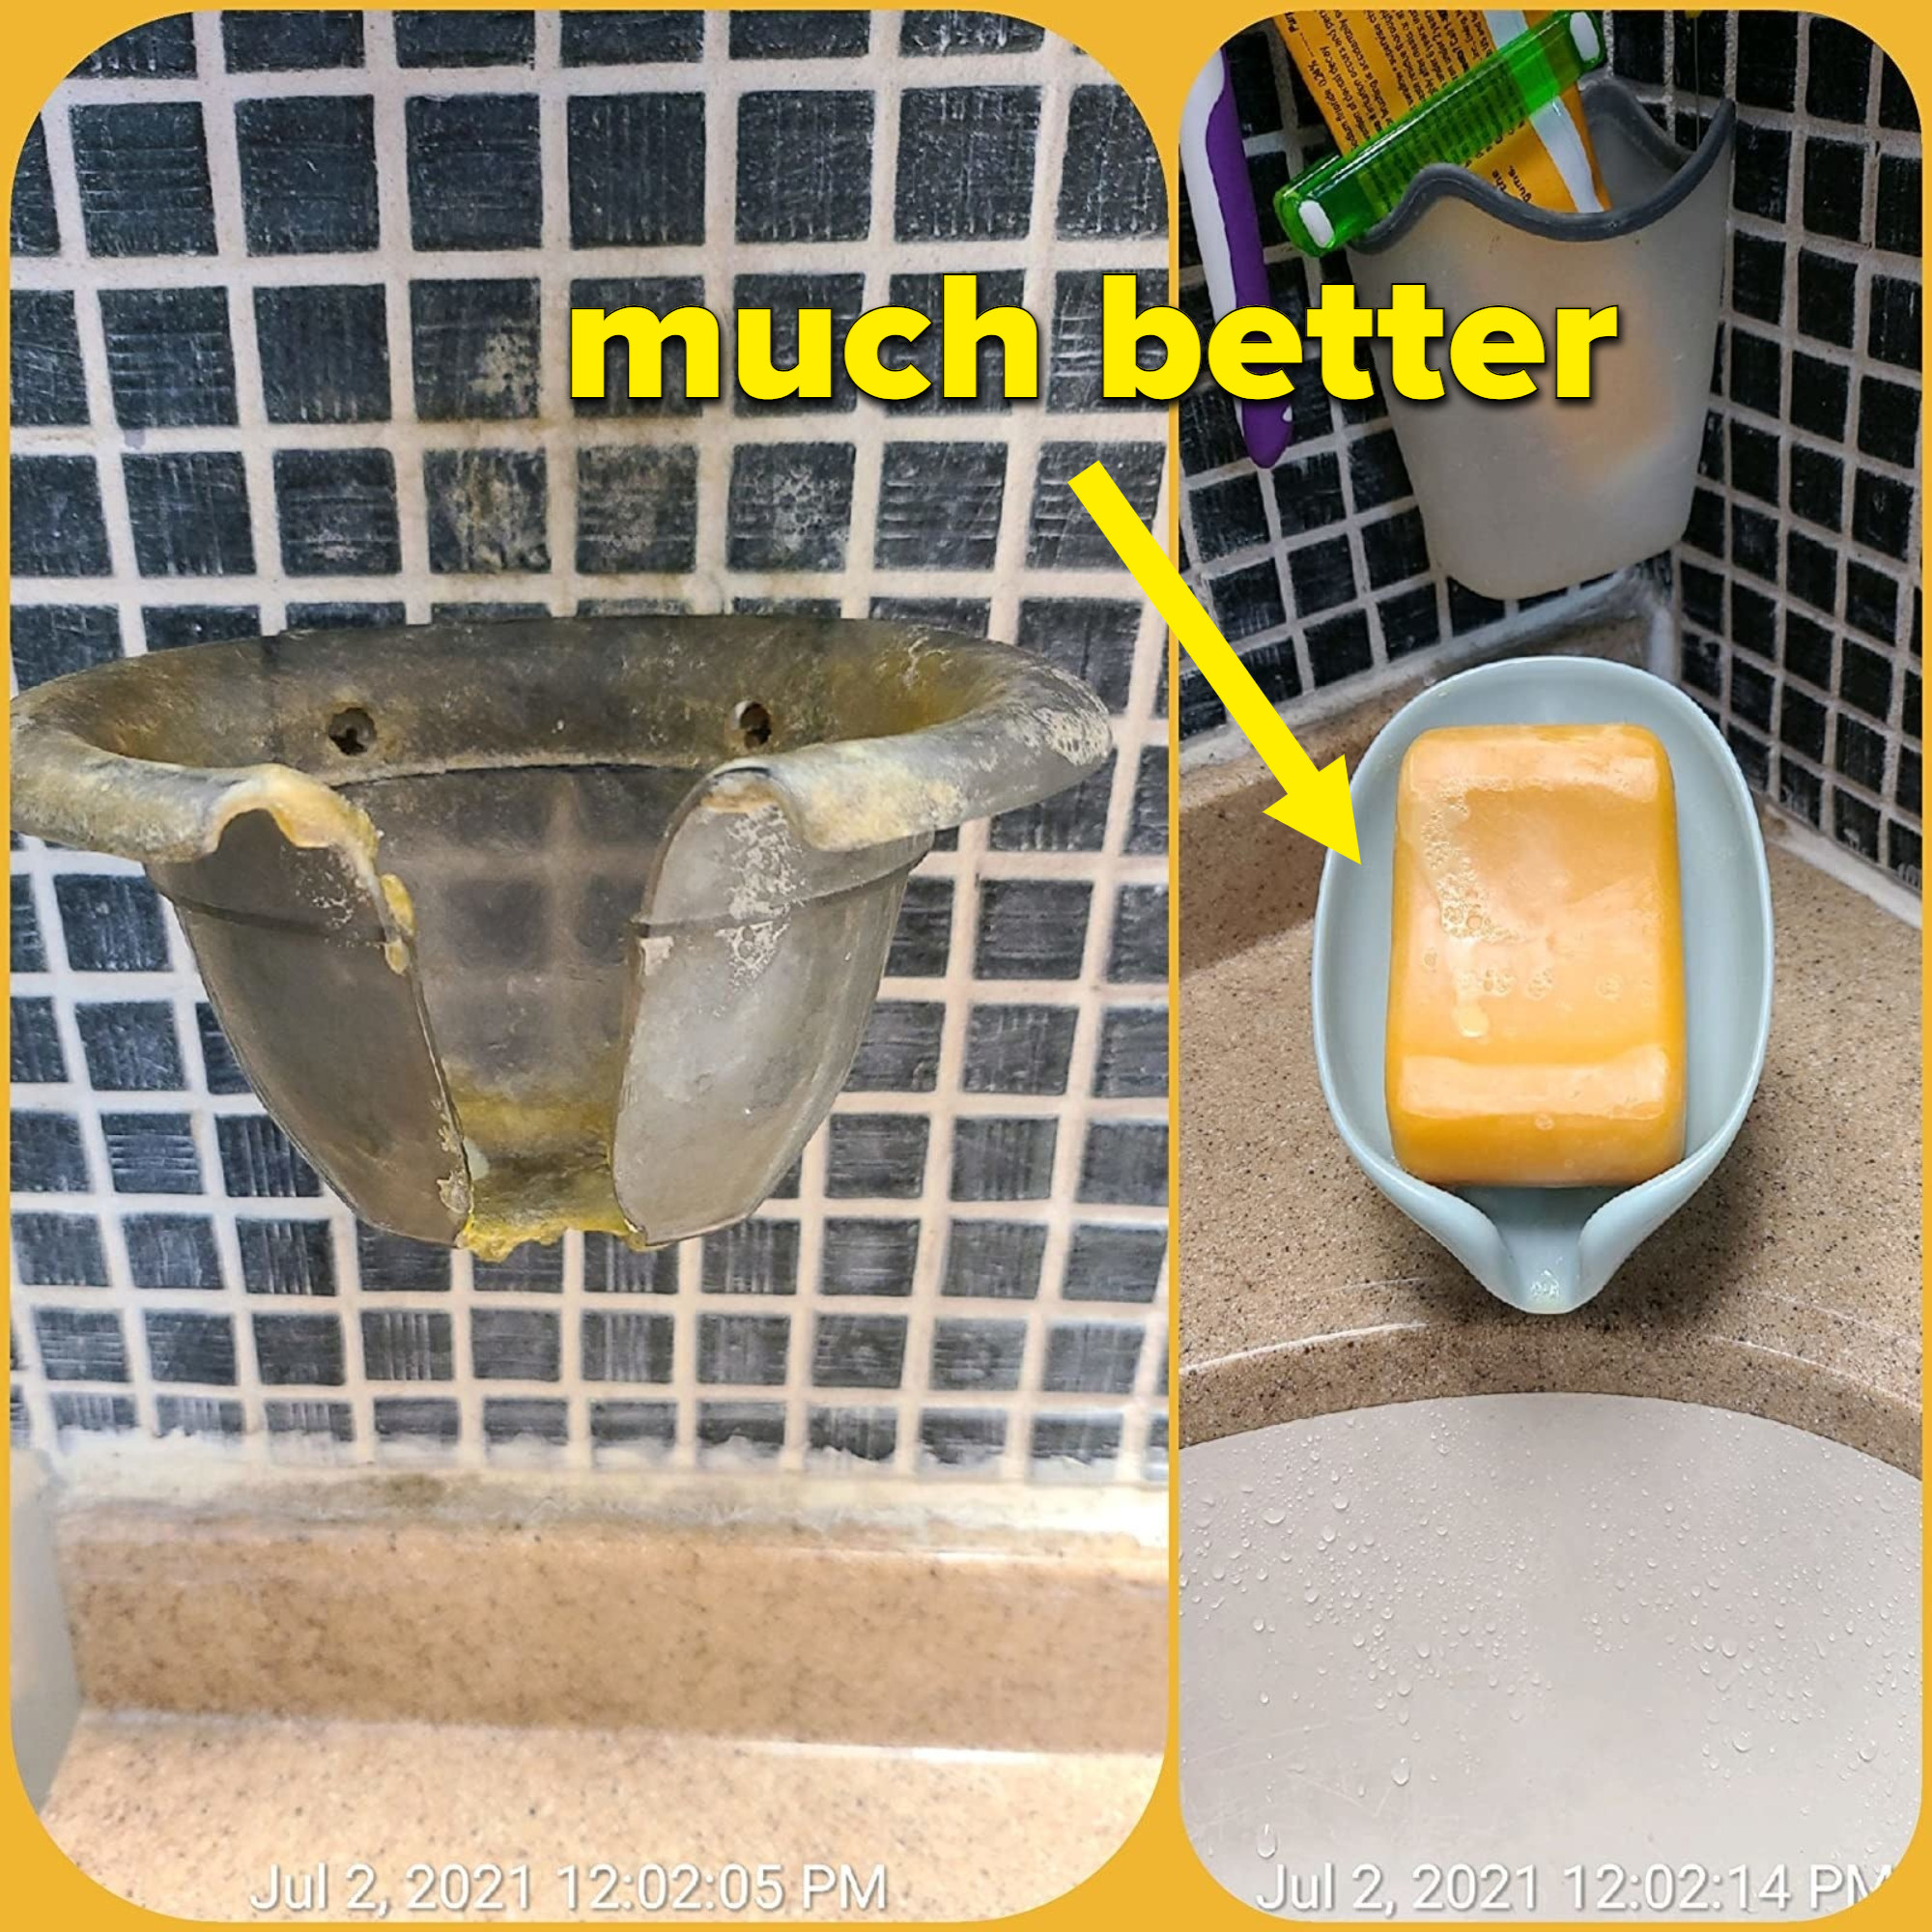 reviewer before and after images; an old gunked up soap holder replaced by the leaf shaped soap holder